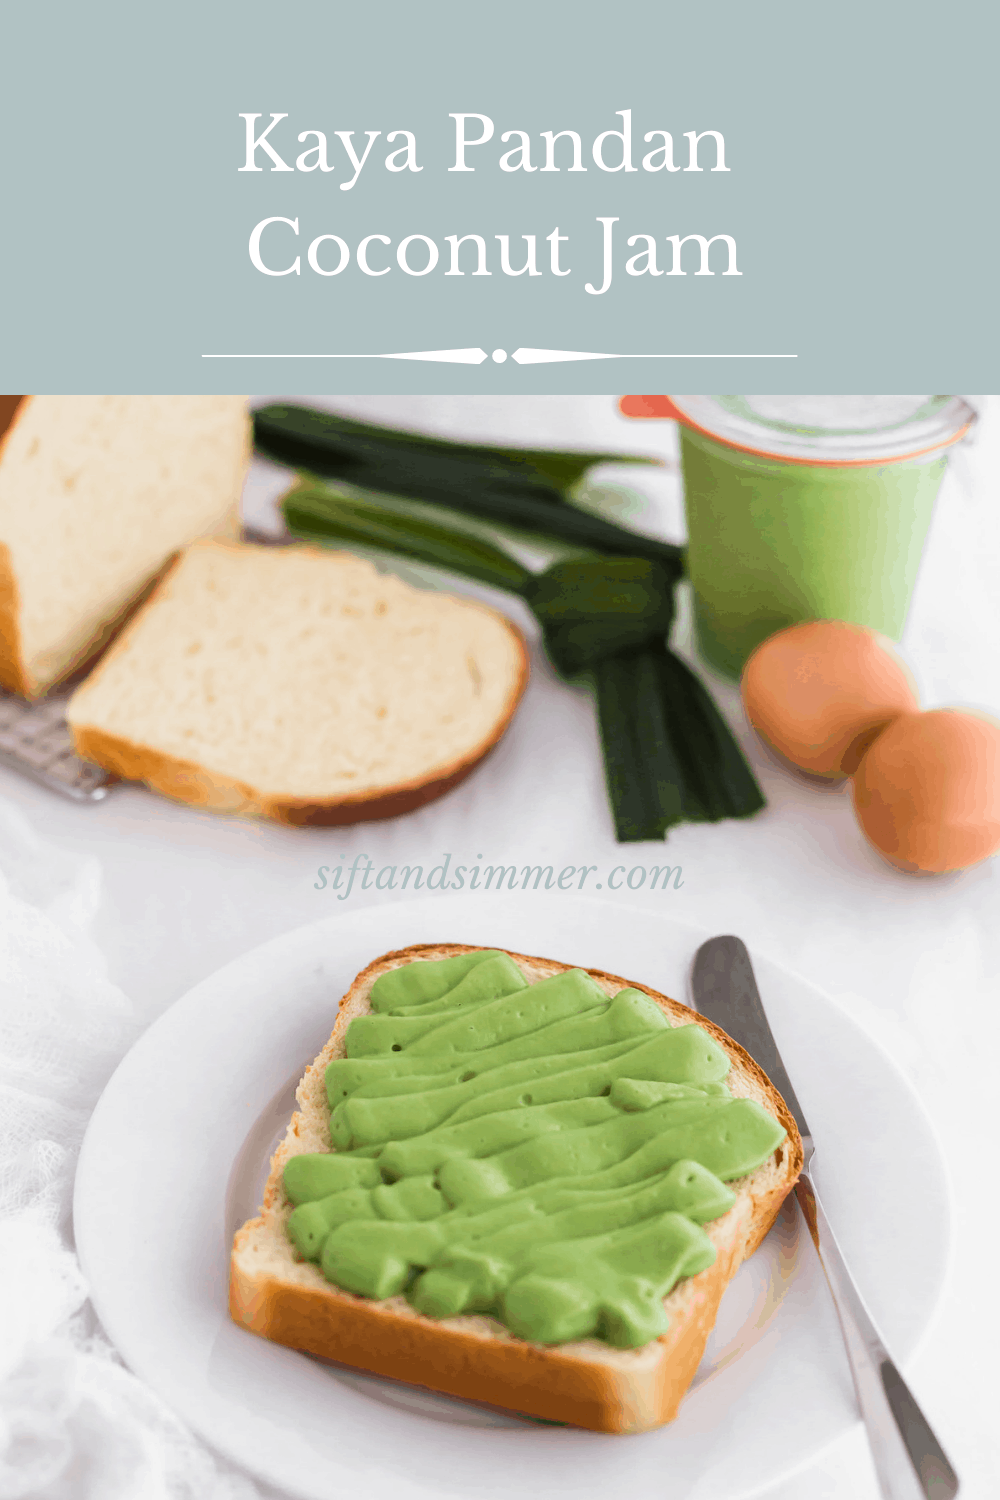 Green kaya pandan coconut jam on slice of bread with knife on plate, eggs and pandan leaves in background with text overlay.